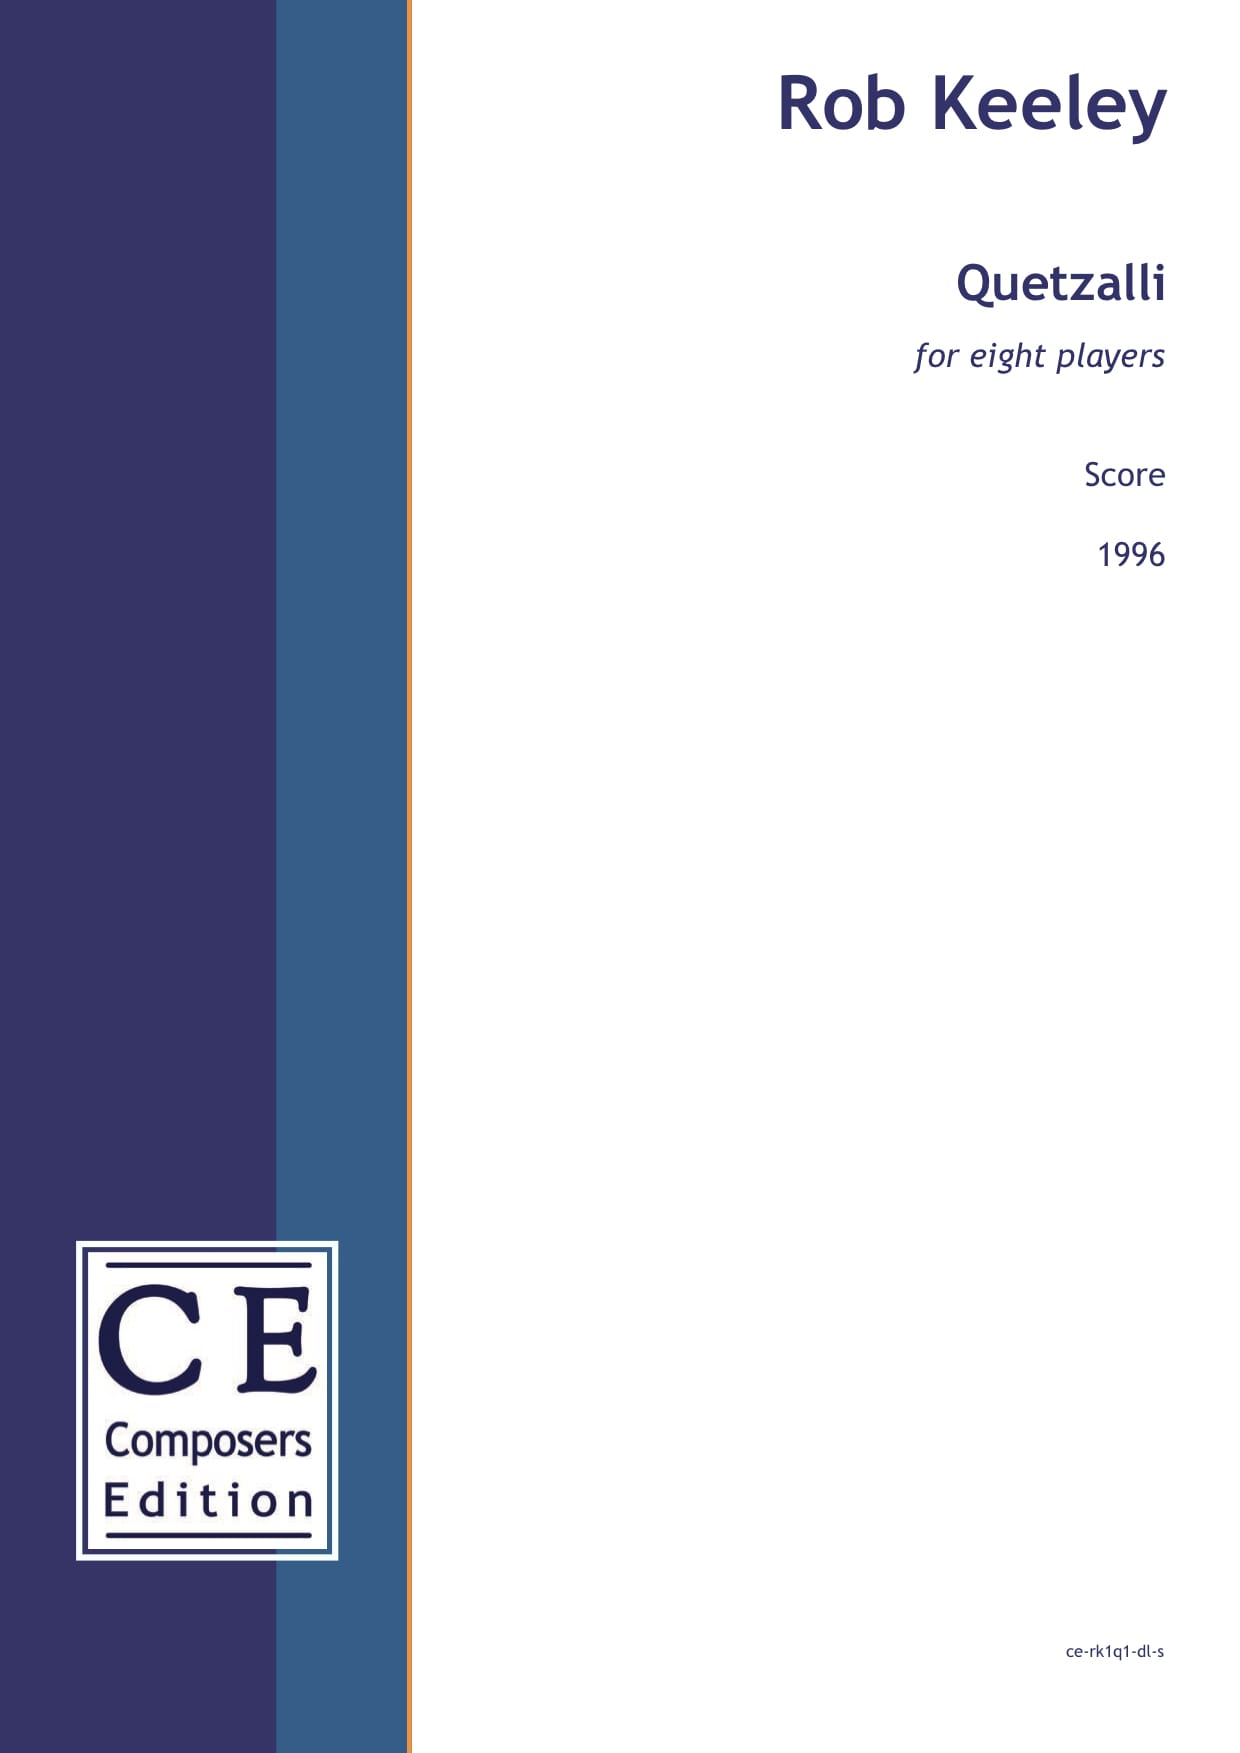 Rob Keeley: Quetzalli for eight players